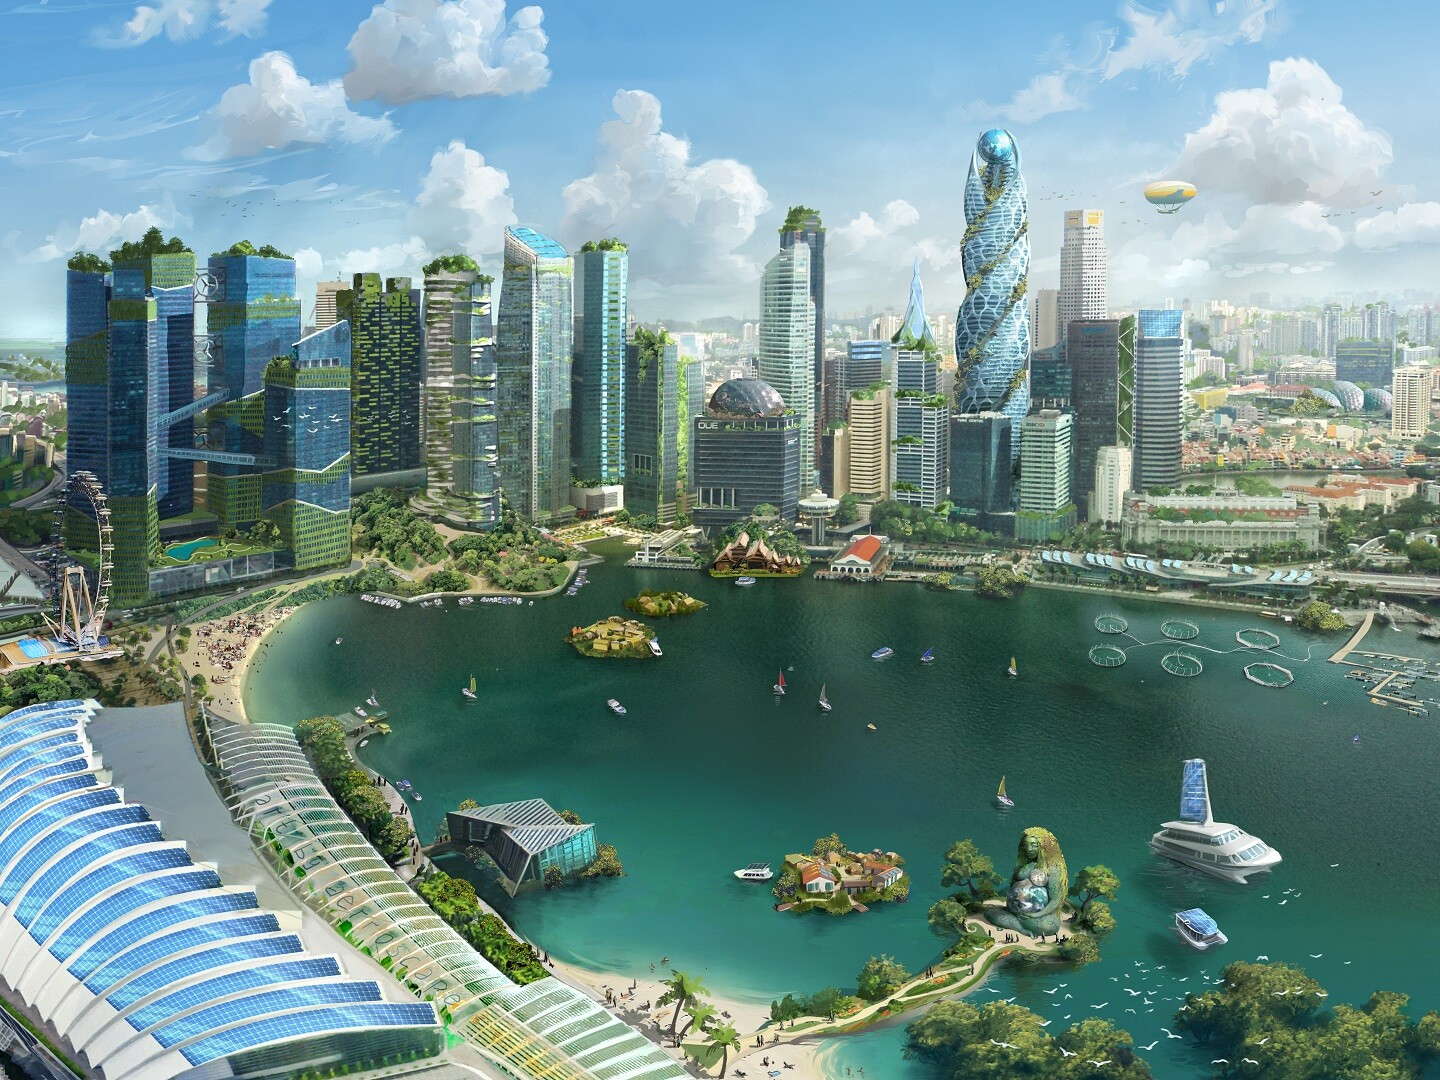 Utopistic Singapore in the year 2048